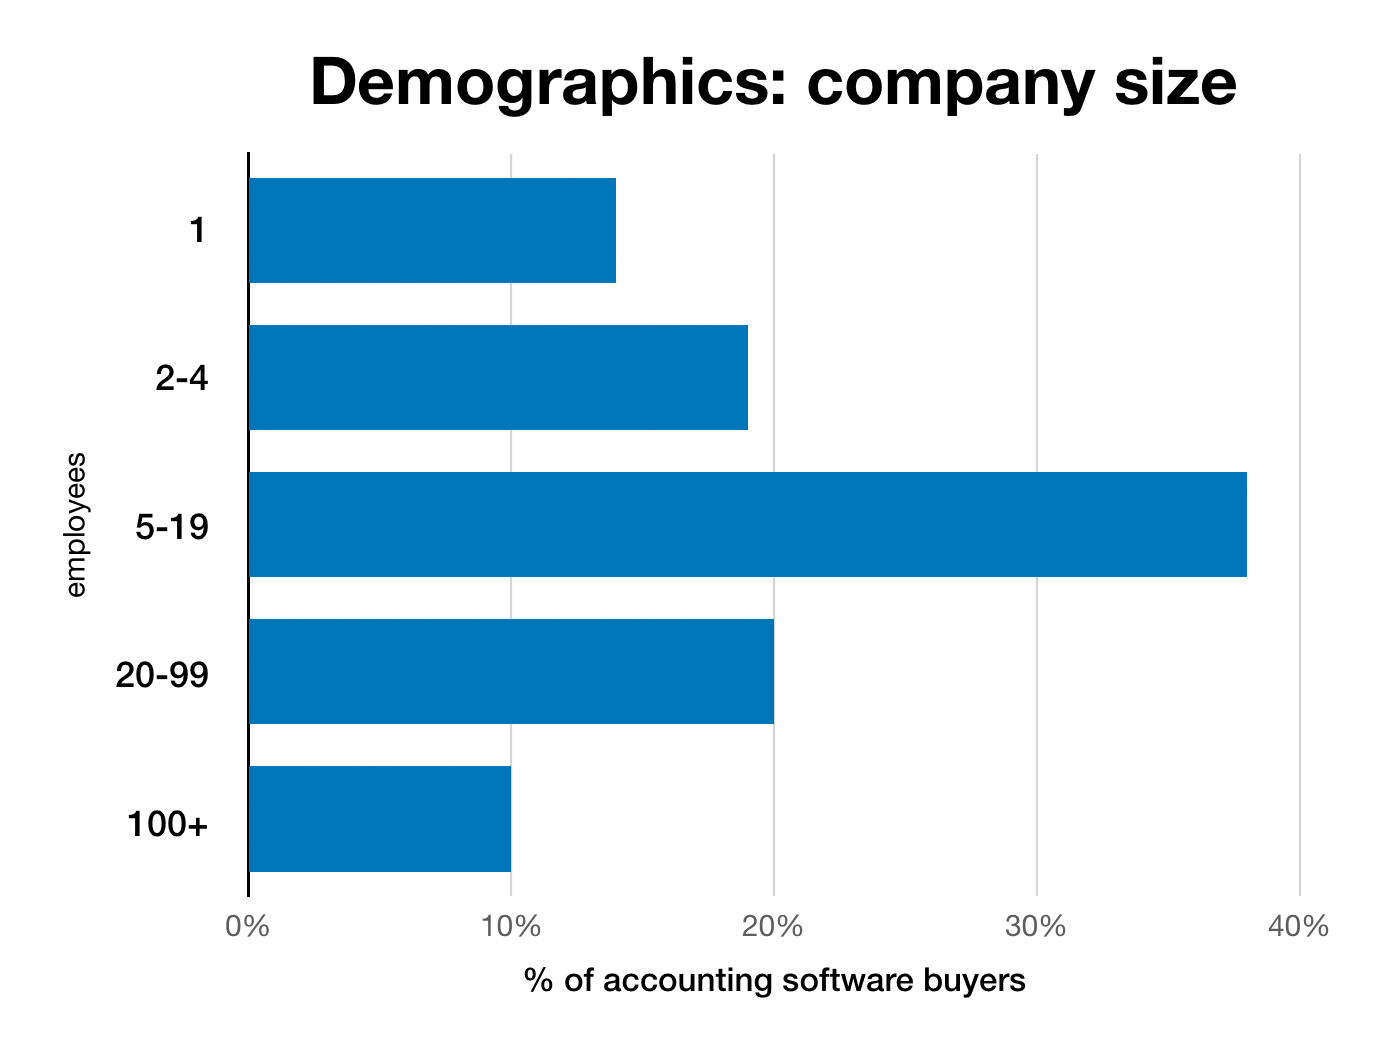 Chart of company size demographics